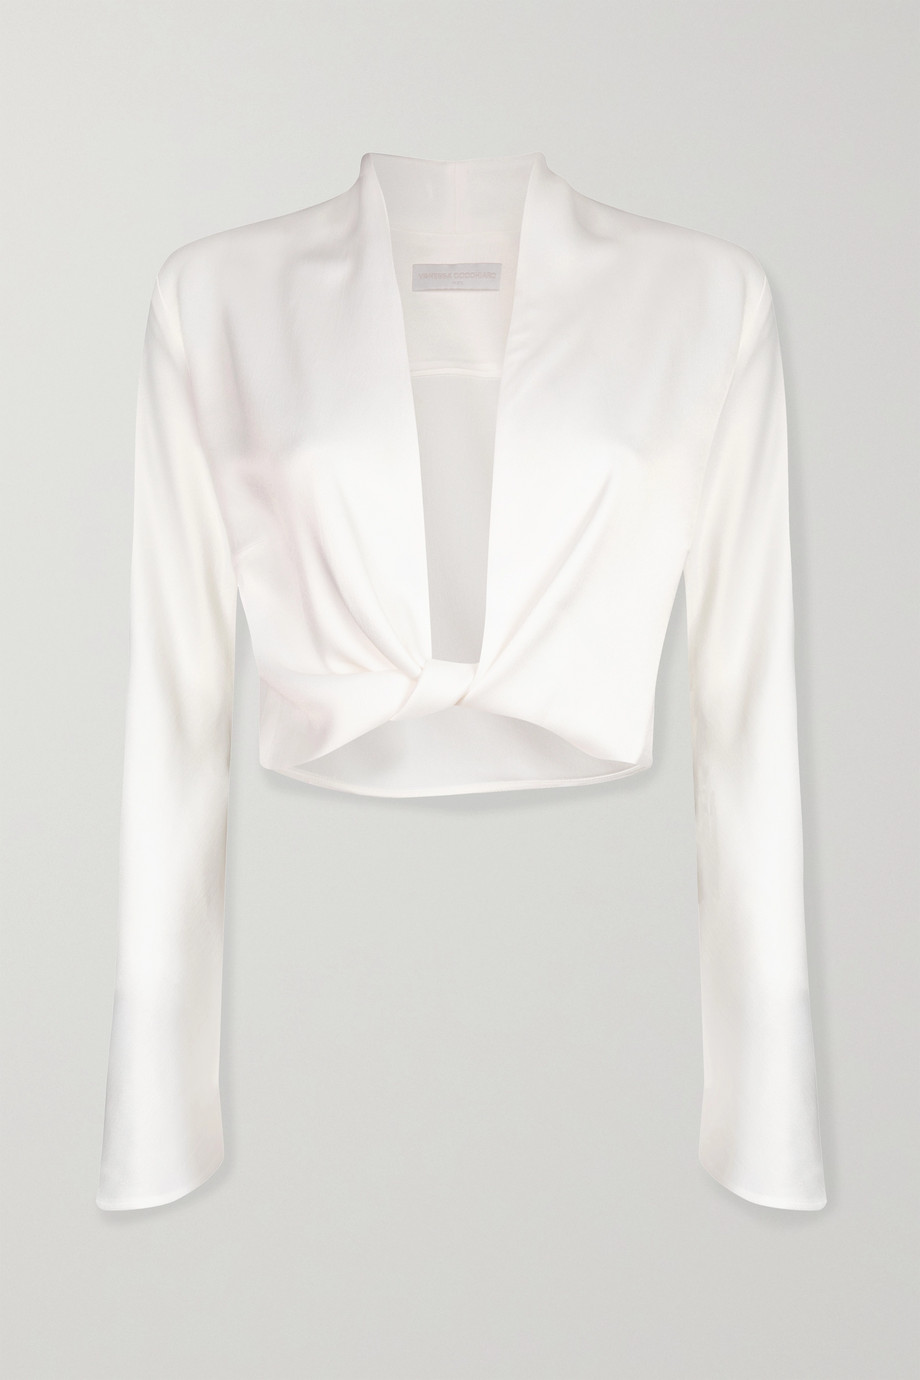 Vanessa Cocchiaro Herta cropped satin wrap top